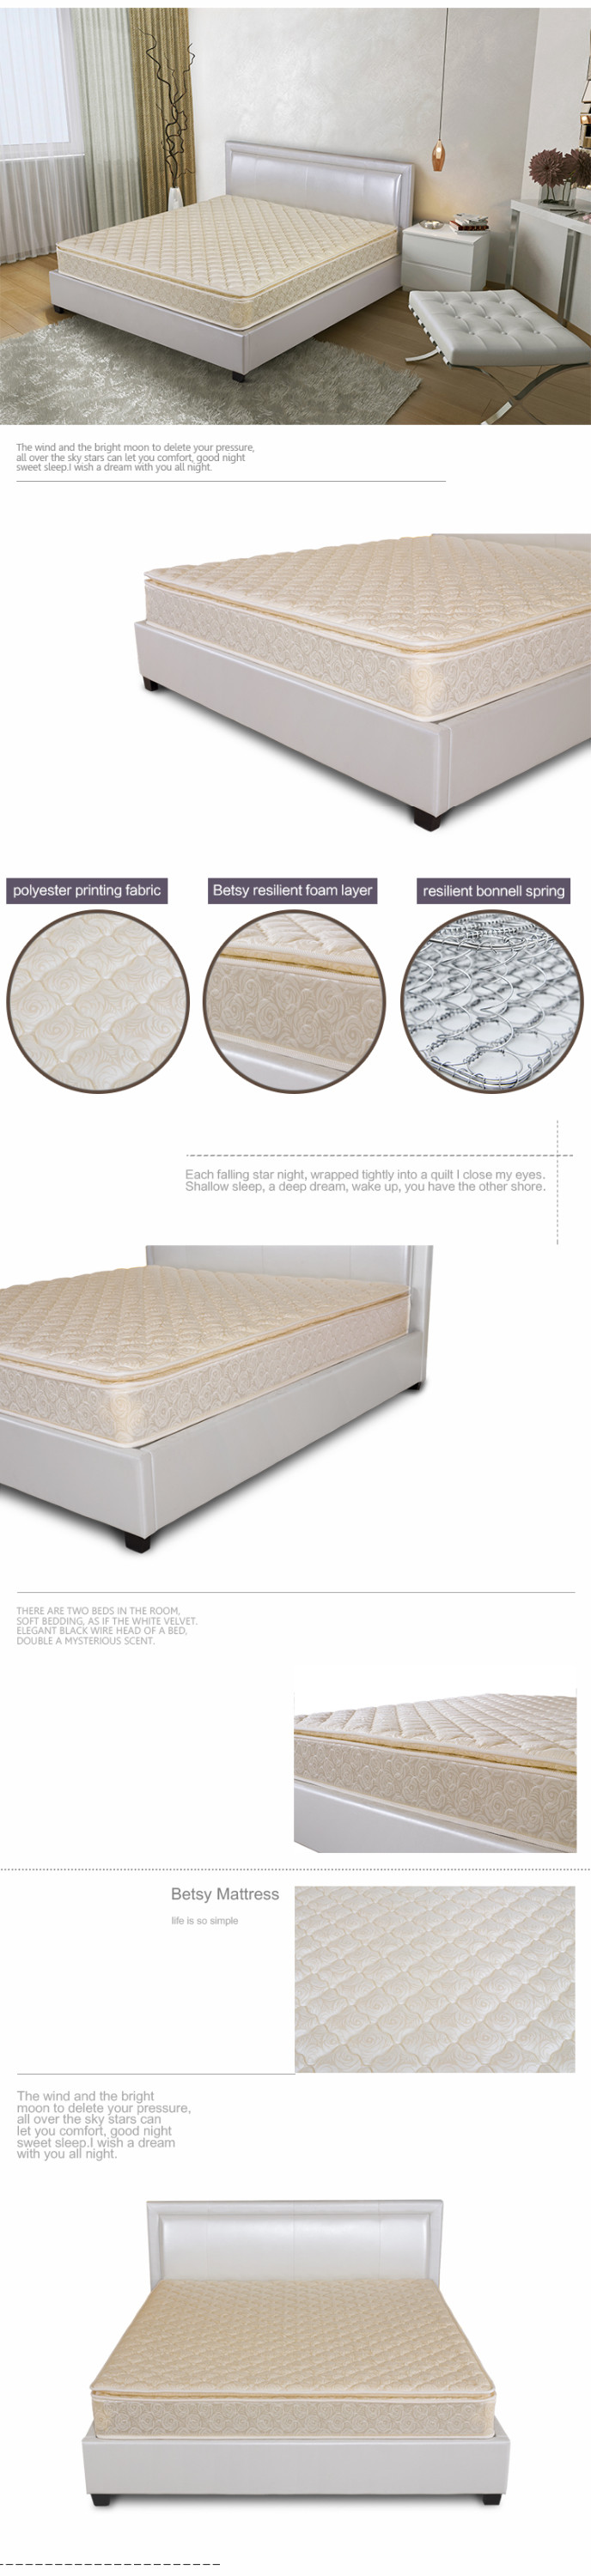 Luxurious jad and palm replacement diamond mattress prices with foam layer and bonnell spring - Jozy Mattress | Jozy.net